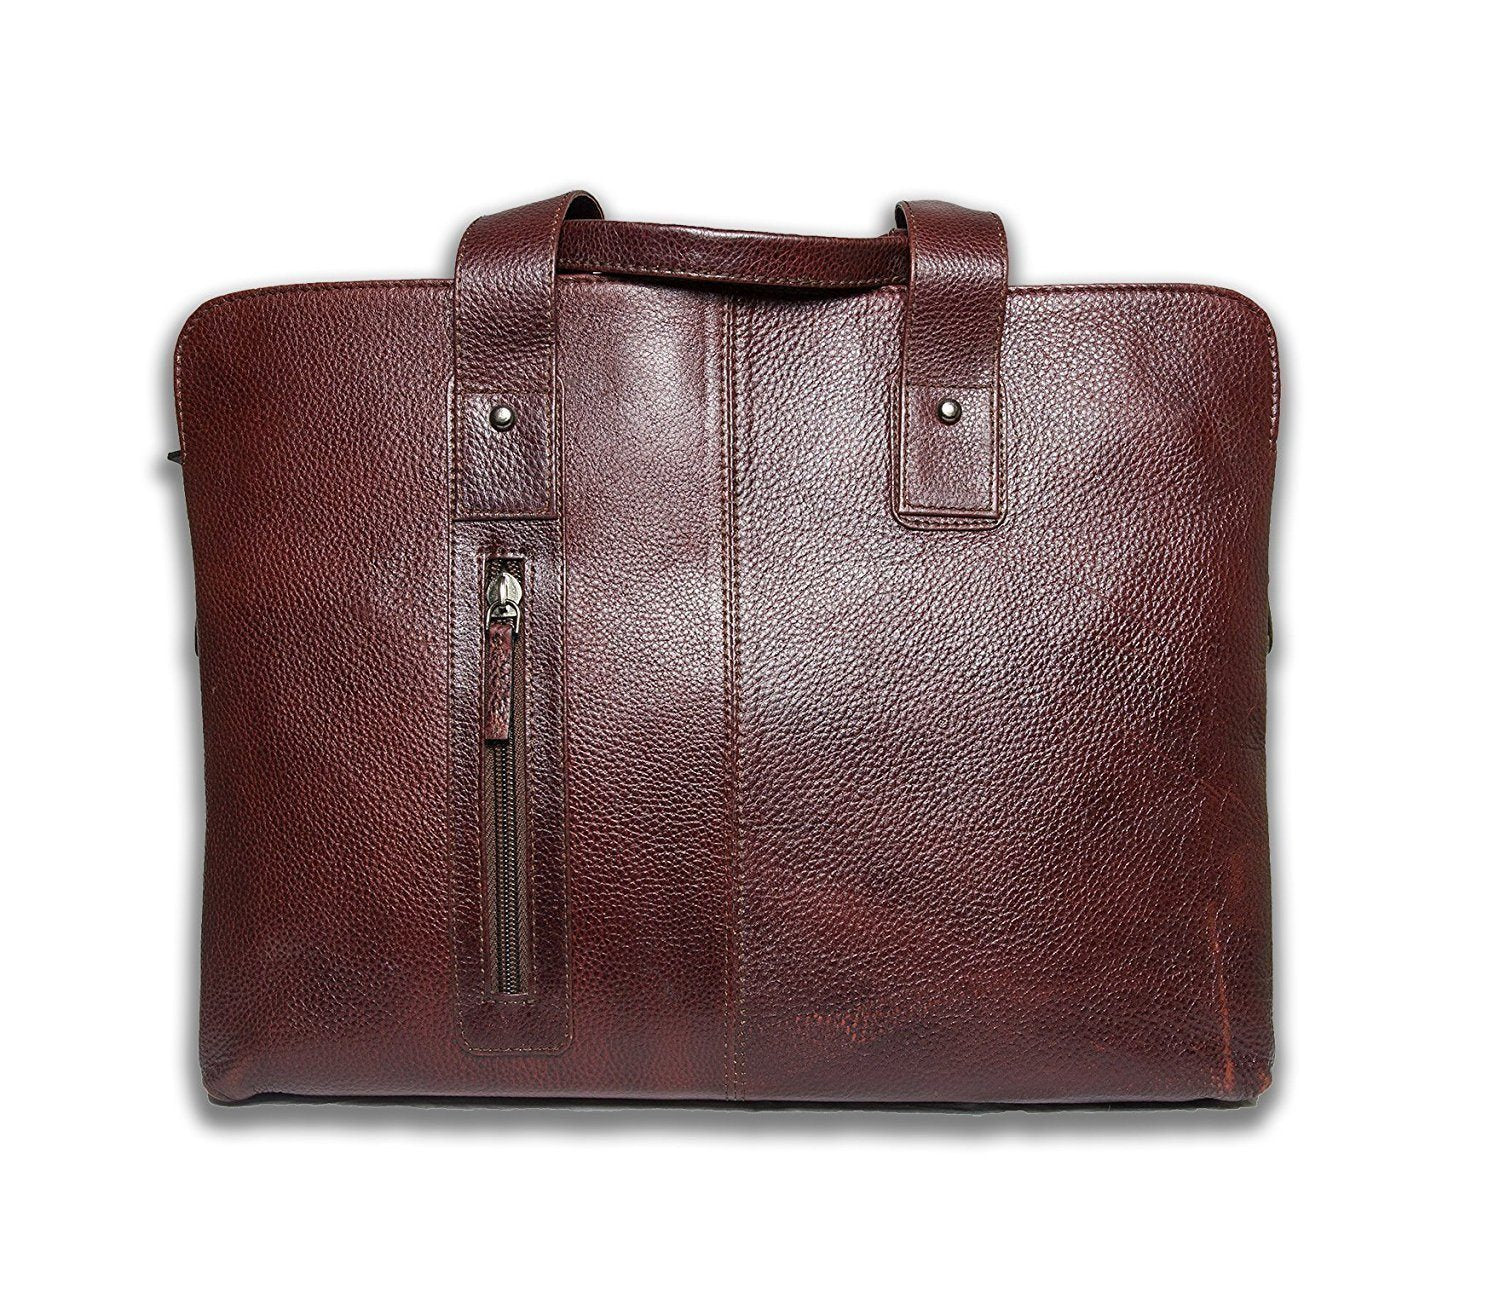 Leather - IN-INDIA Office Special Pure Leather Briefcase Office Stylish Bag - Hot Selling 2017 - Fits Laptop Upto 15.6 Inches